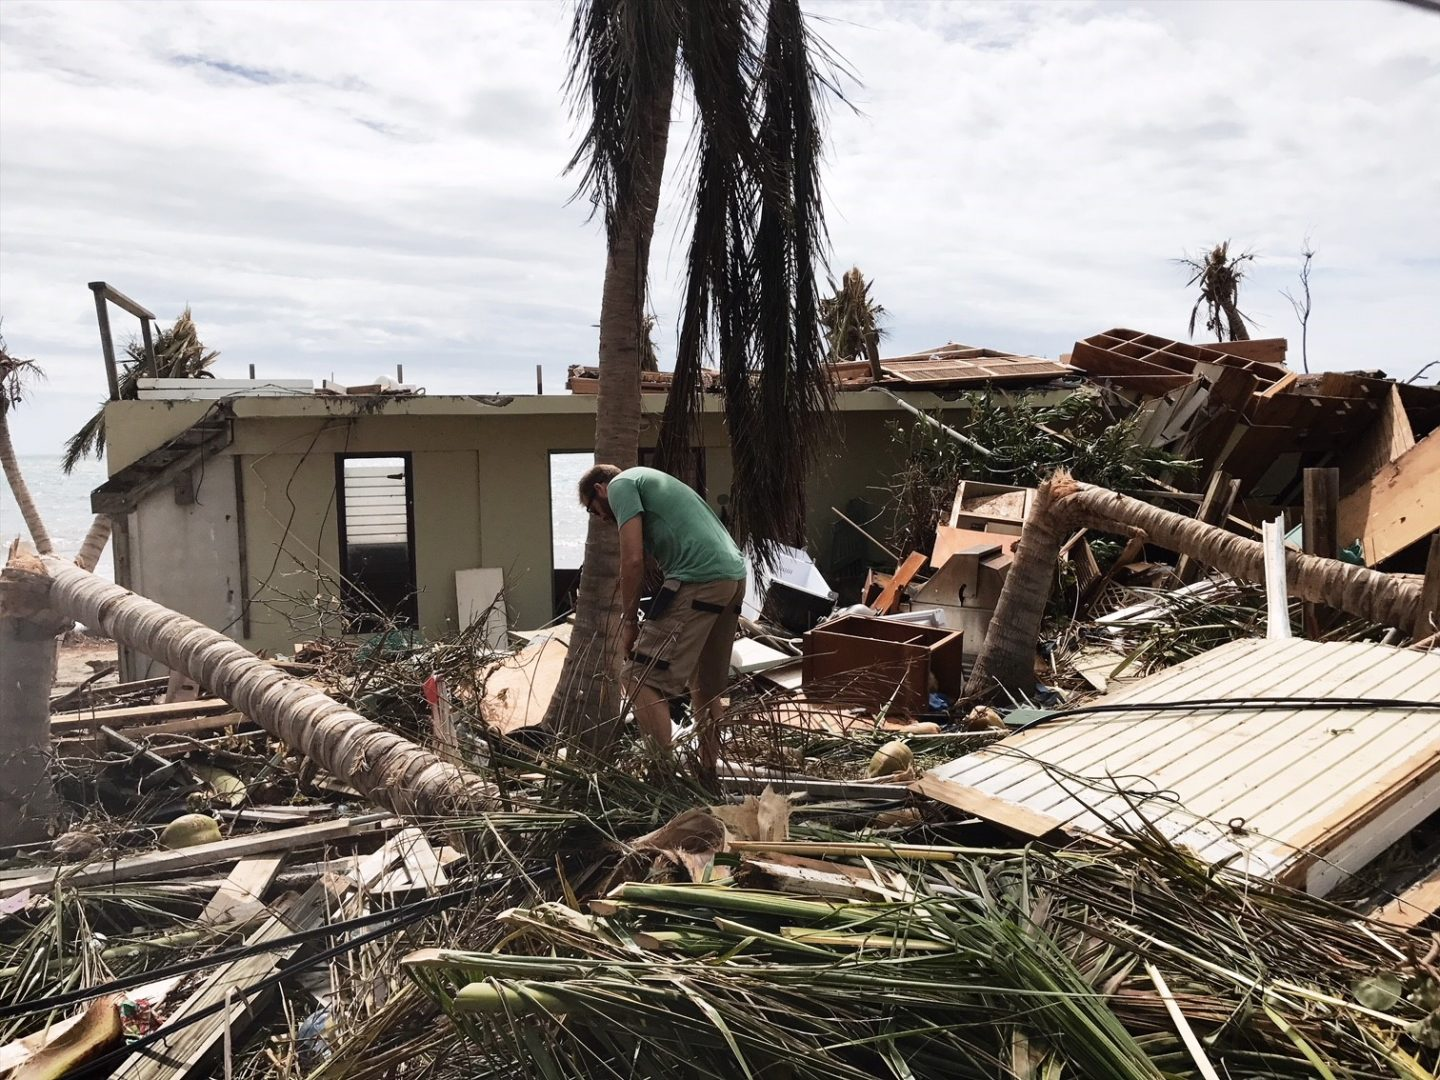 Finding wood to board up the house after hurricane Irma devastates the BVI